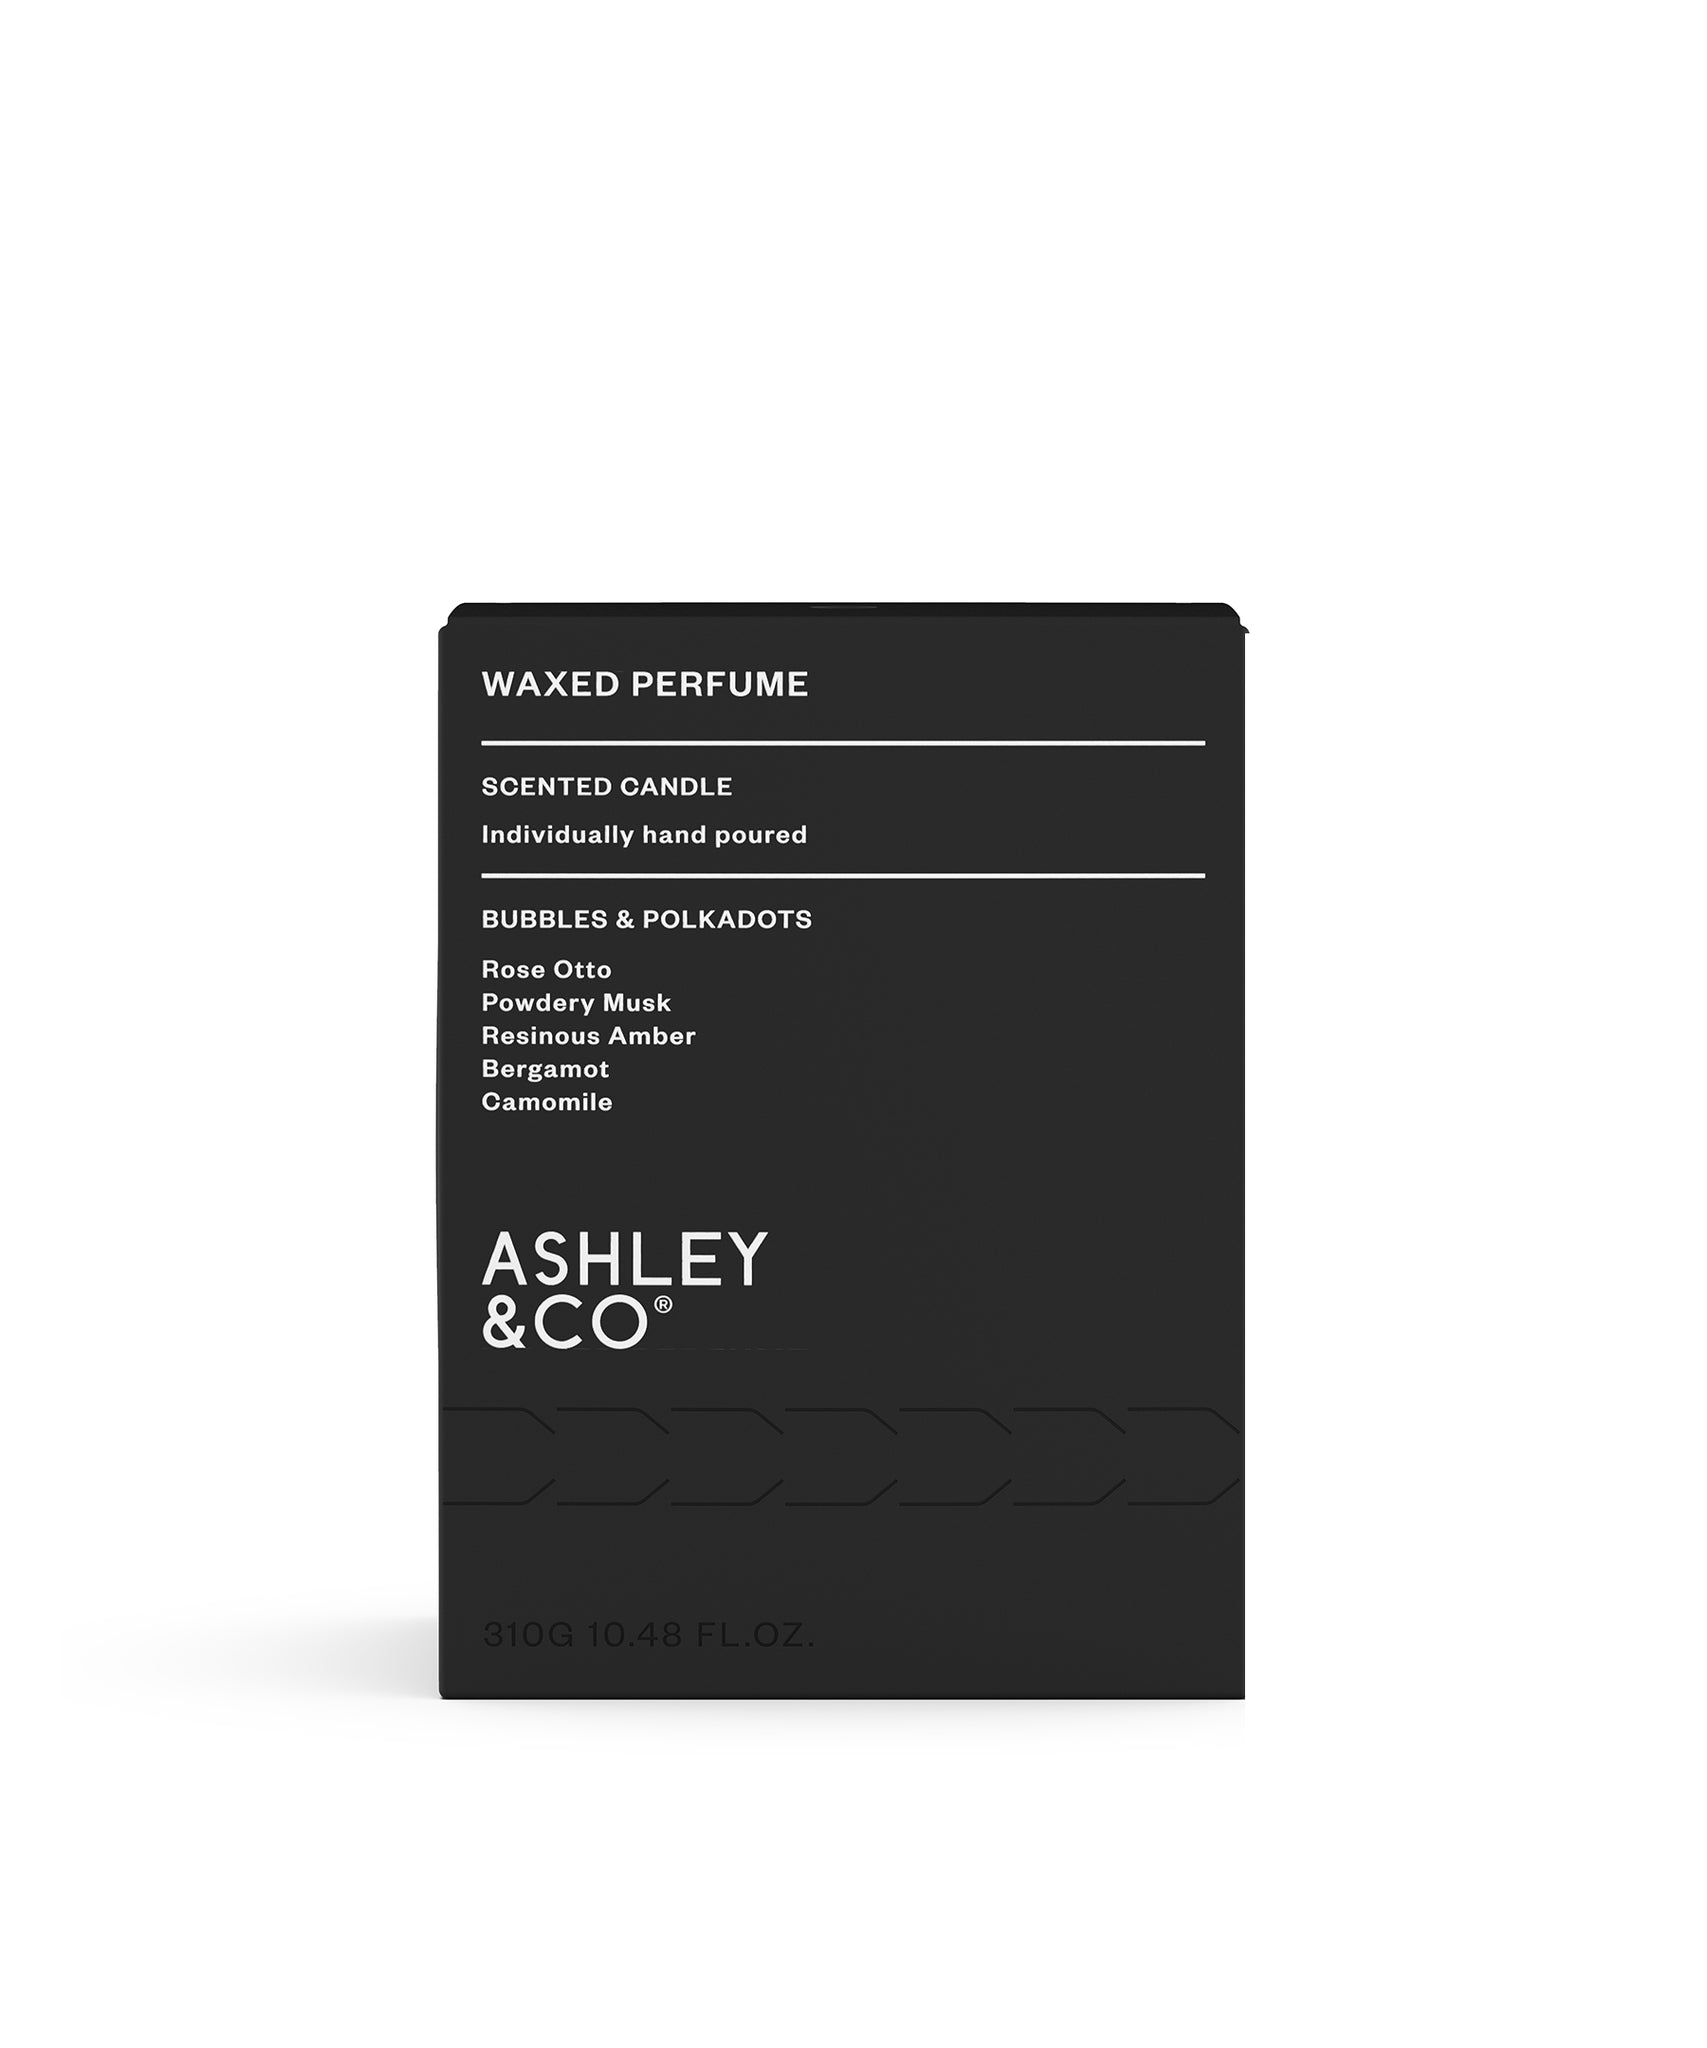 Bubbles & Polkadots Waxed Perfume by Ashley & Co.